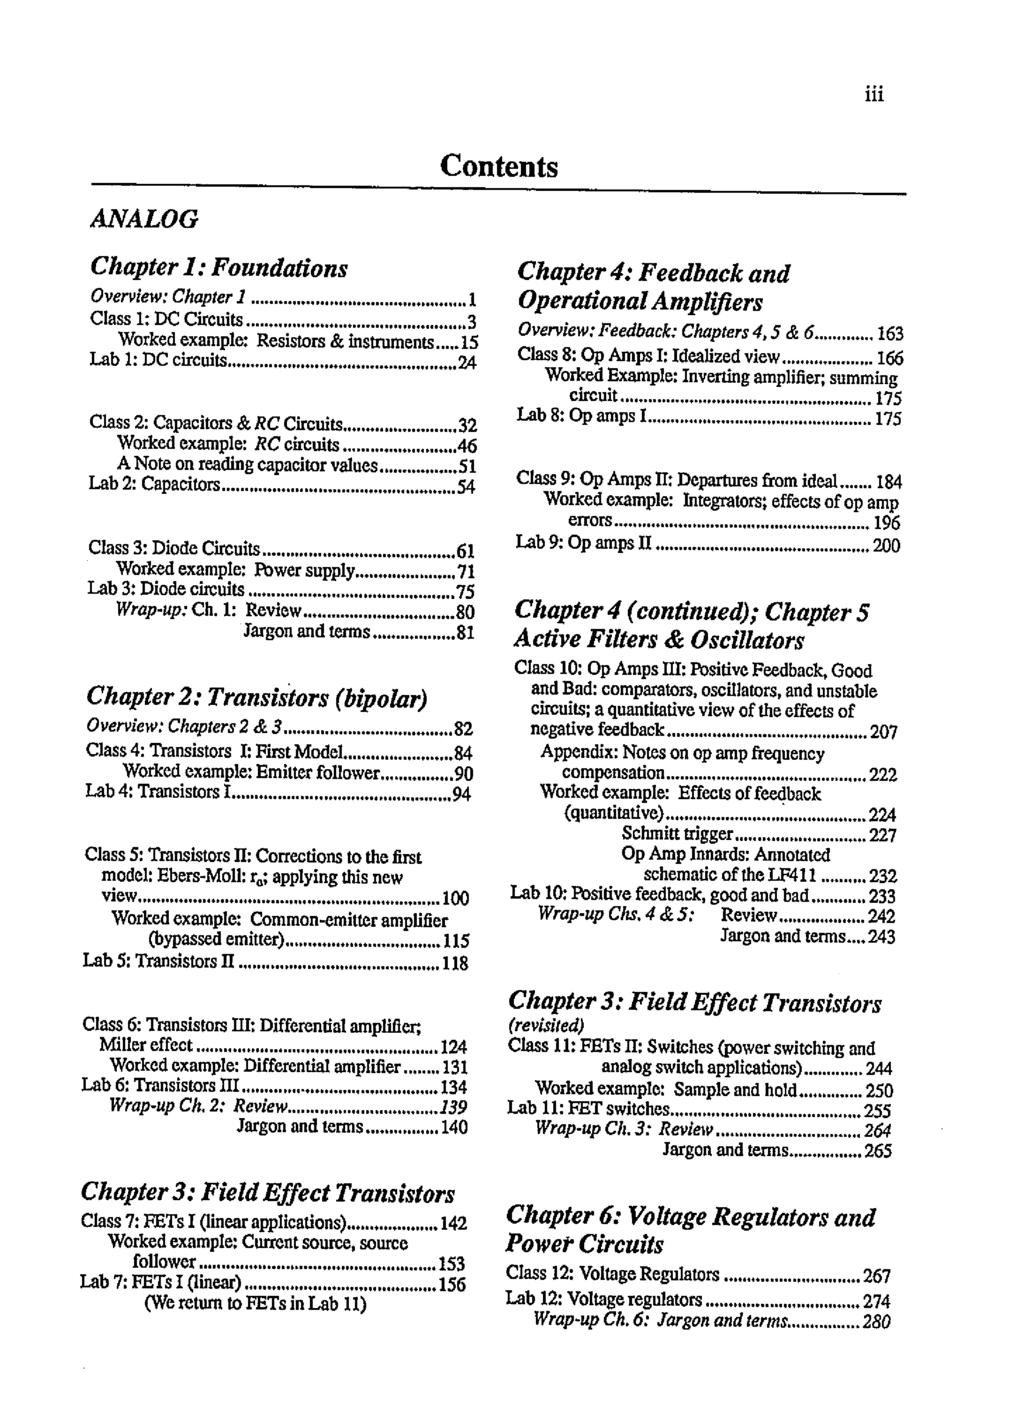 Student Manual For The Art Of Electronics Pdf Rs Flip Flop Using Op Amp Tit Contents Analog Chapter I Foundations 4 Feedback And Overview 1